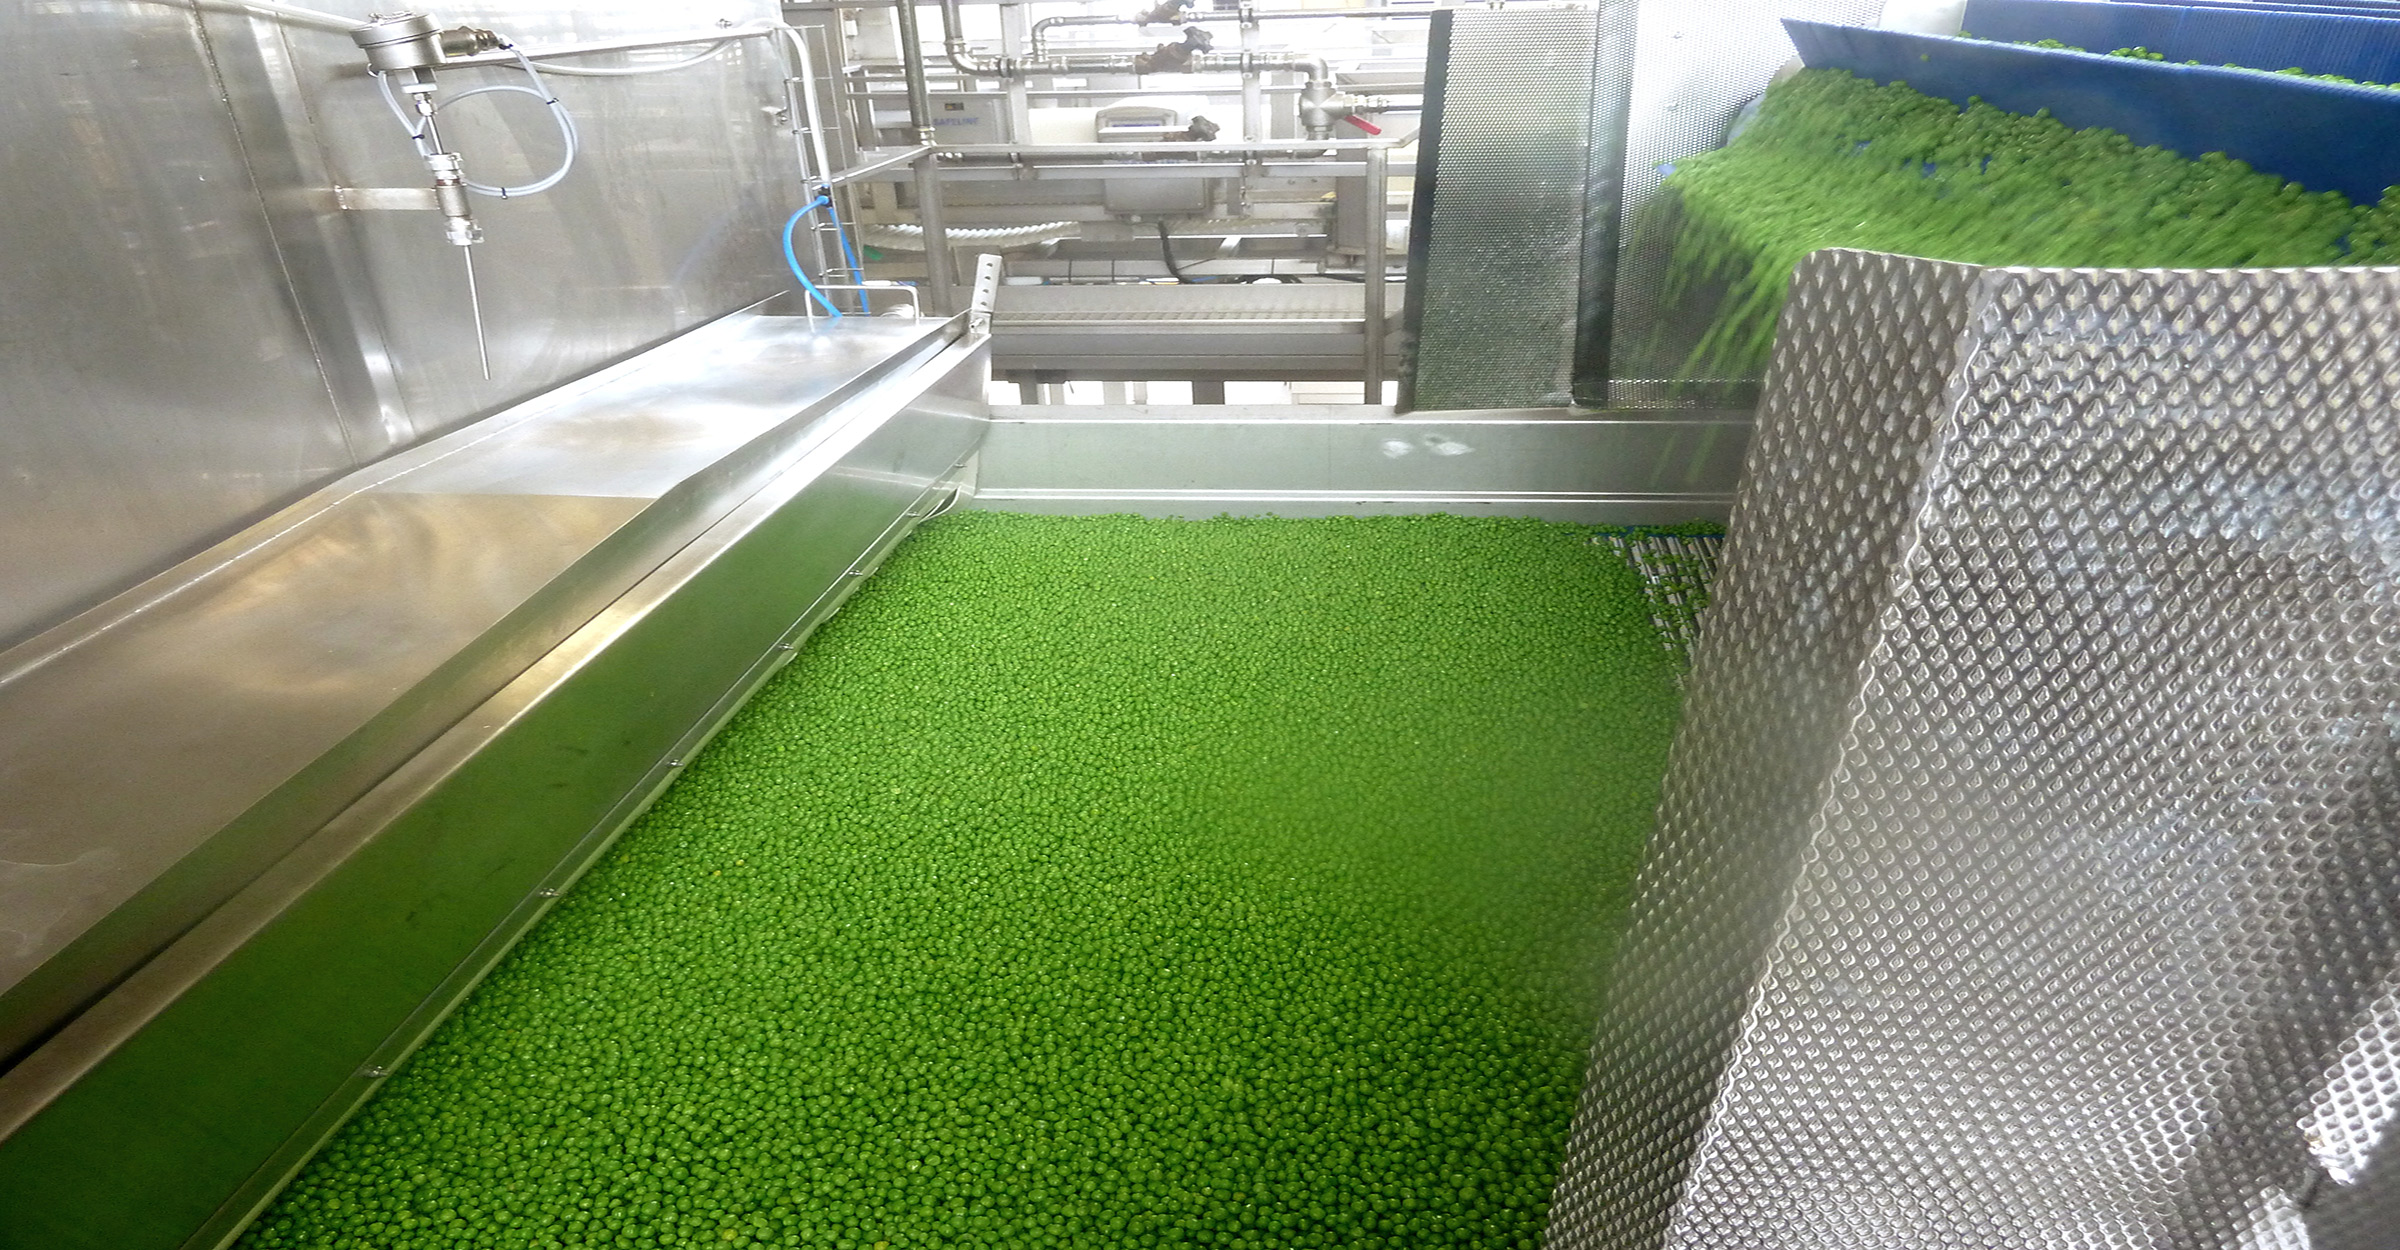 Tunnel freezer processing peas